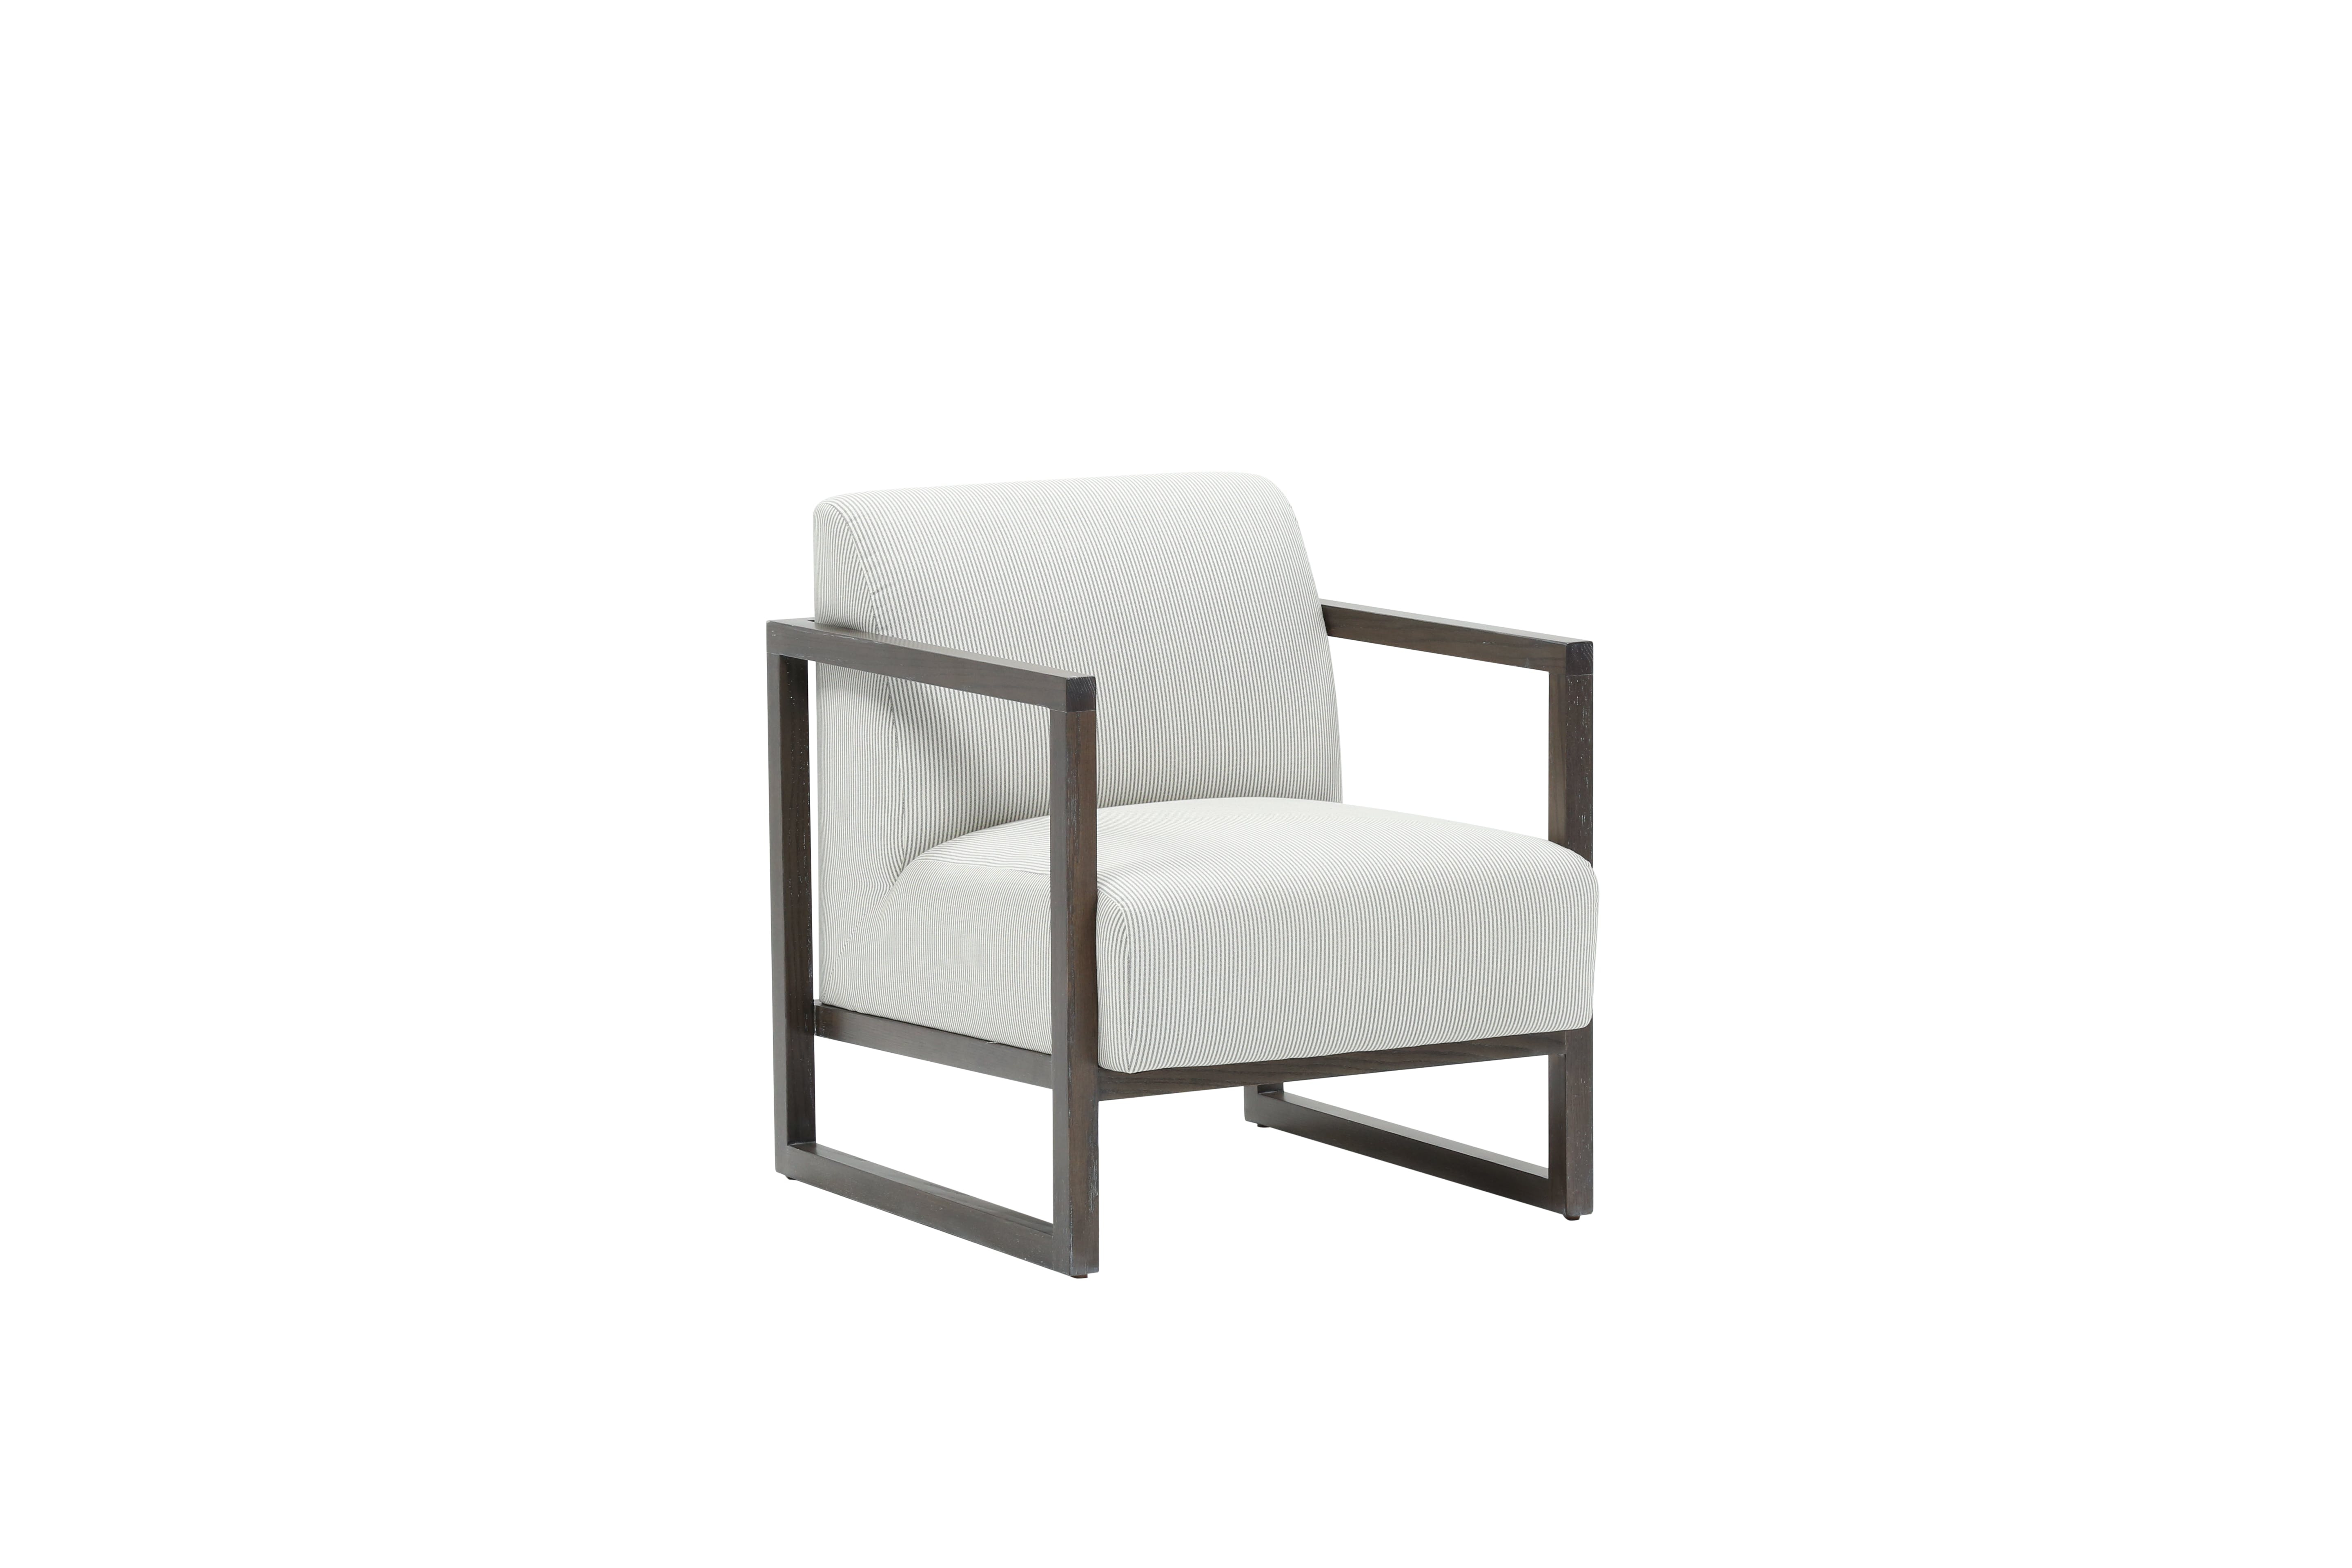 Nate Berkus Just Launched A Home Collection With Hubby Jeremiah With Regard To Ames Arm Sofa Chairs By Nate Berkus And Jeremiah Brent (Photo 17 of 20)